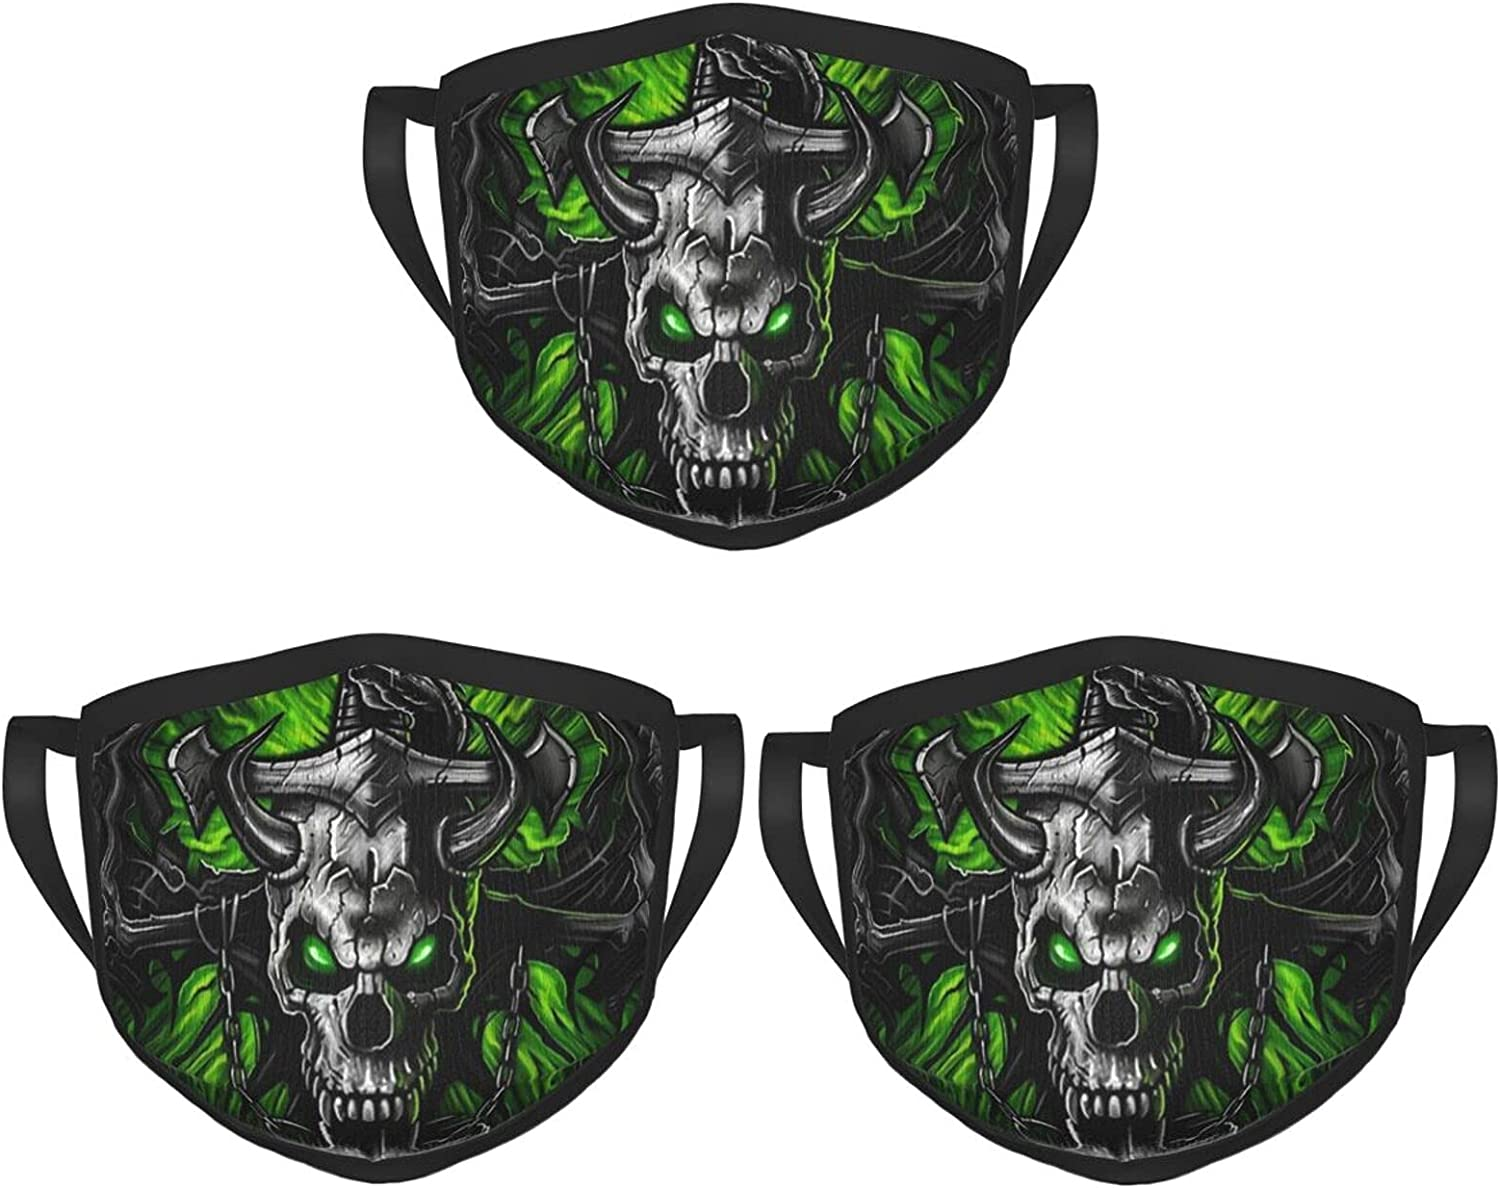 Balaclava Earmuffs Green Skull Winding Sword Dragon Face Mouth Cover Mask Reusable Washable Scarf Towel Cover Headwrap